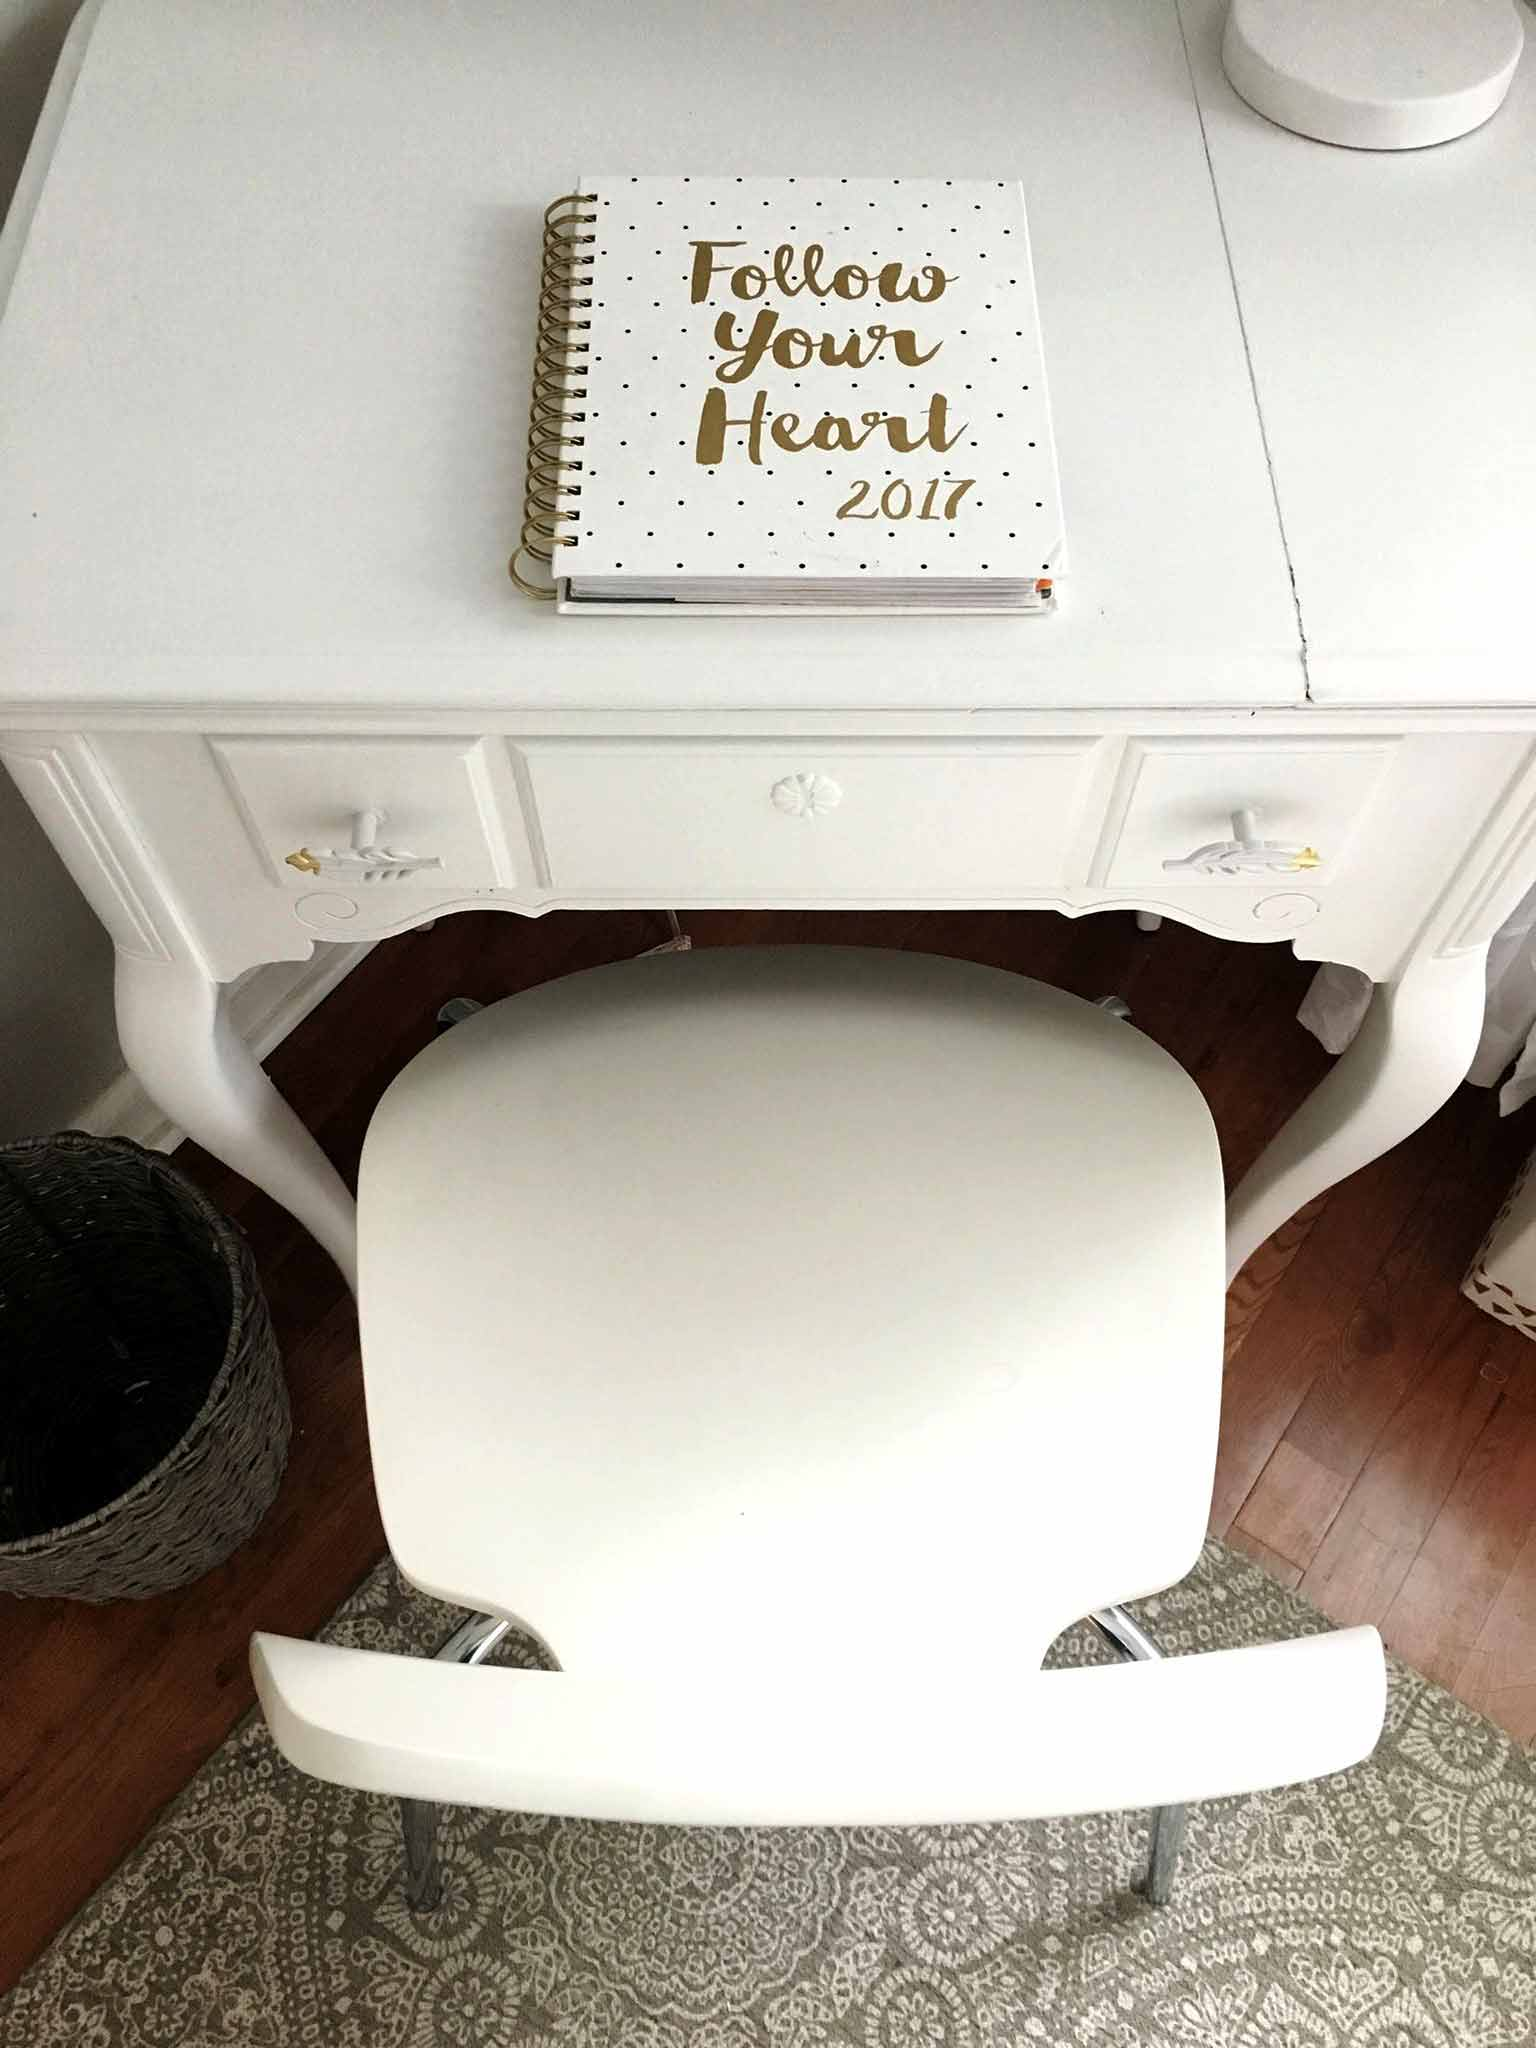 Sewing table painted white - modern boho tween bedroom - That Homebird Life Blog